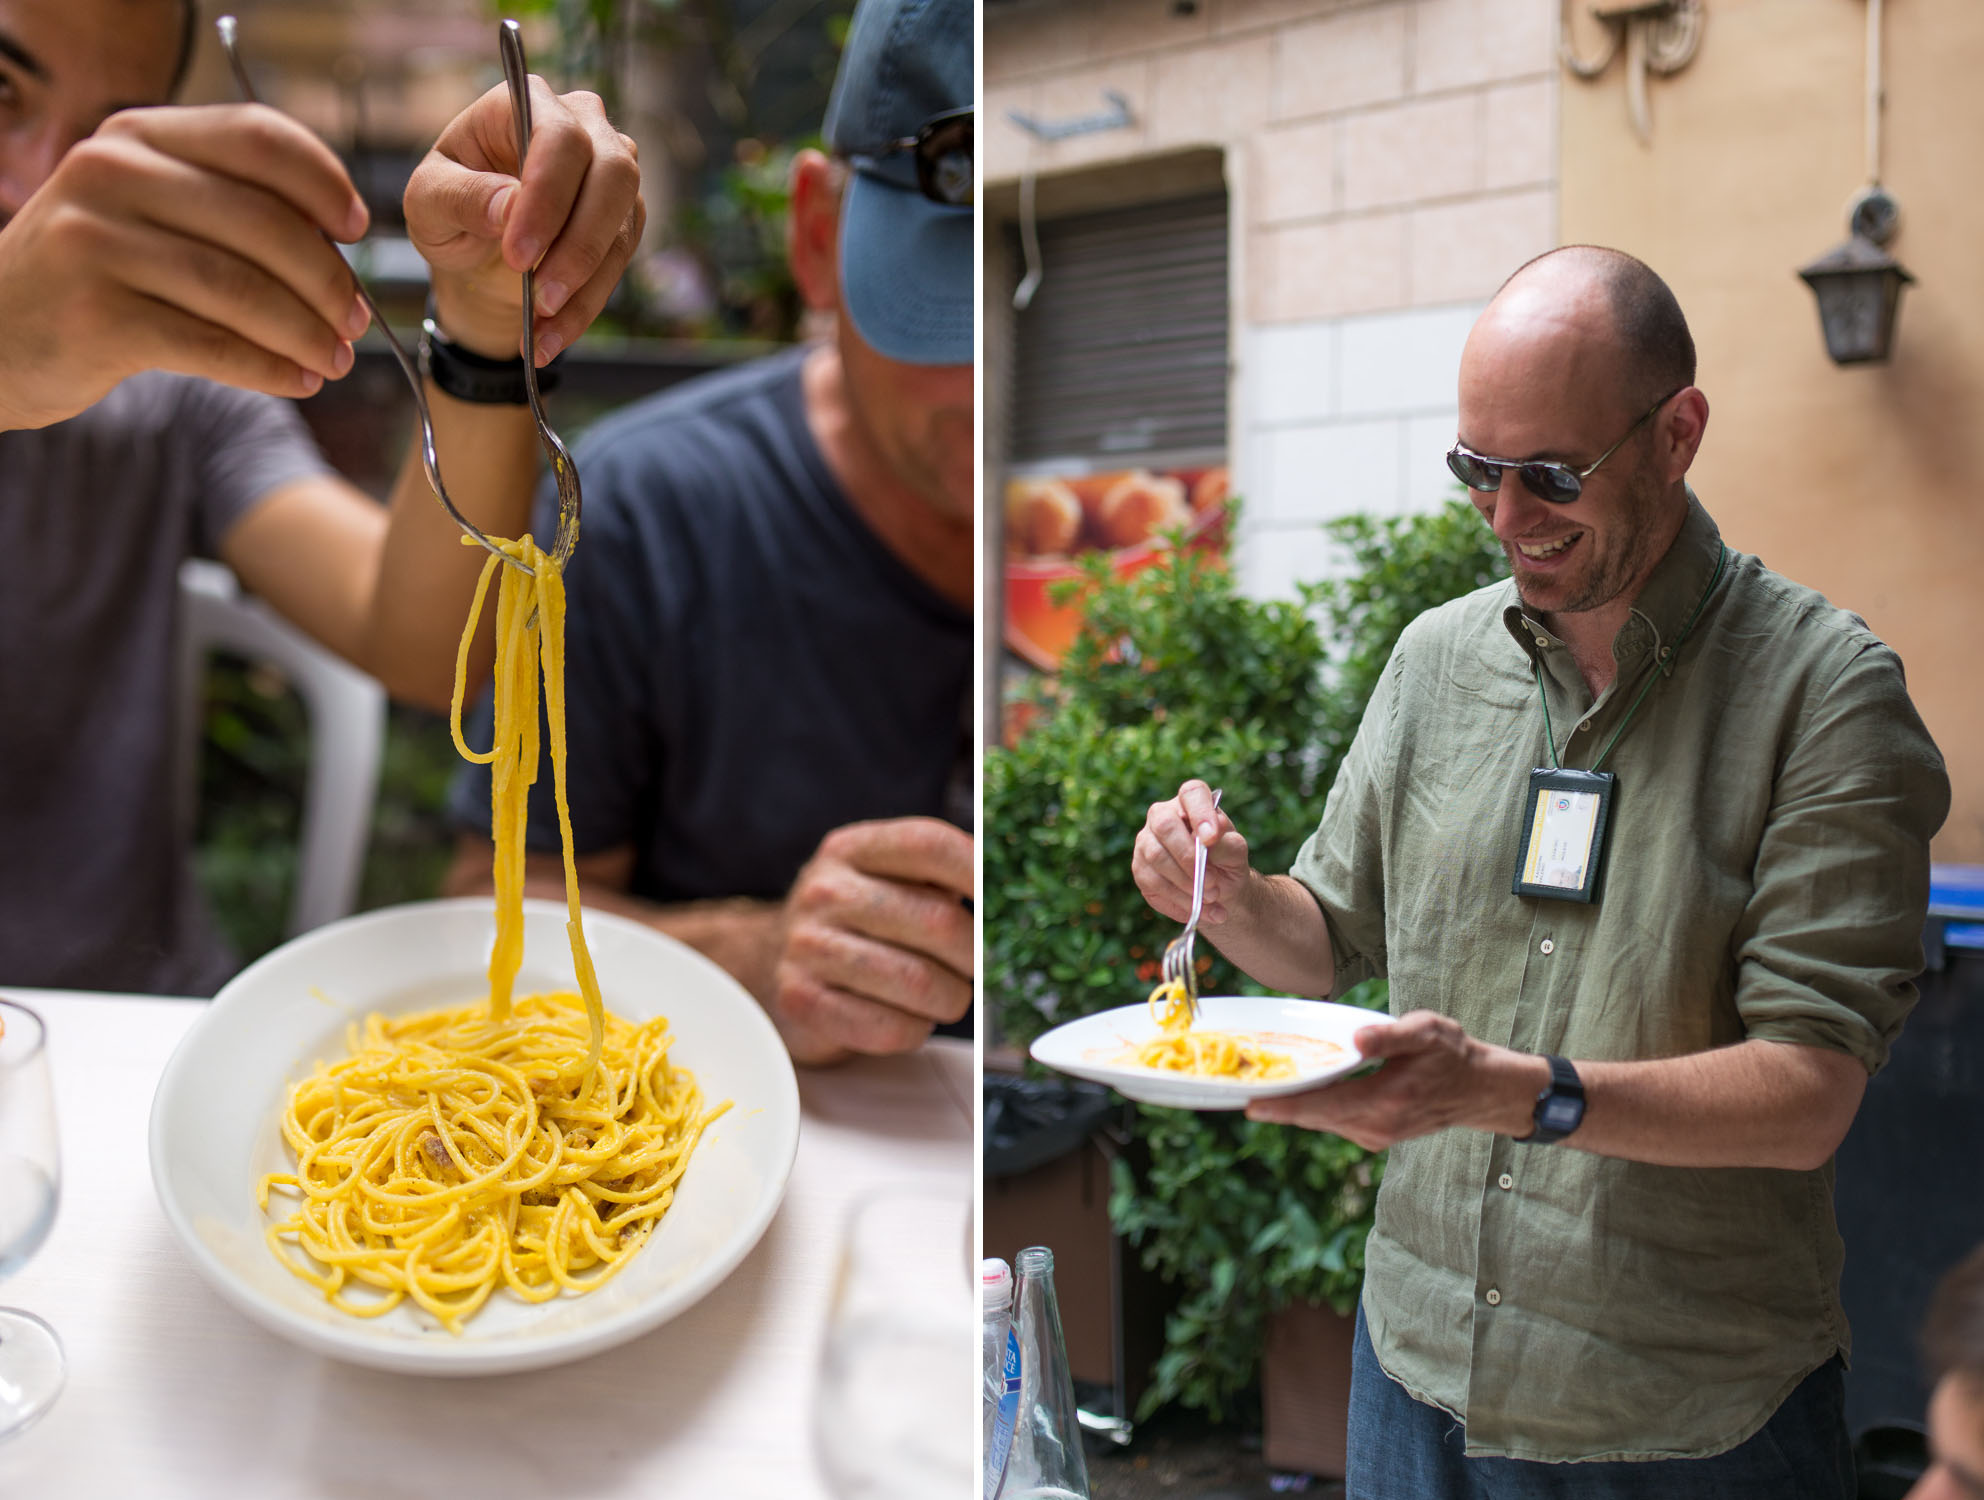 Eating-Italy-Trastevere-Food-Tour-42 copy